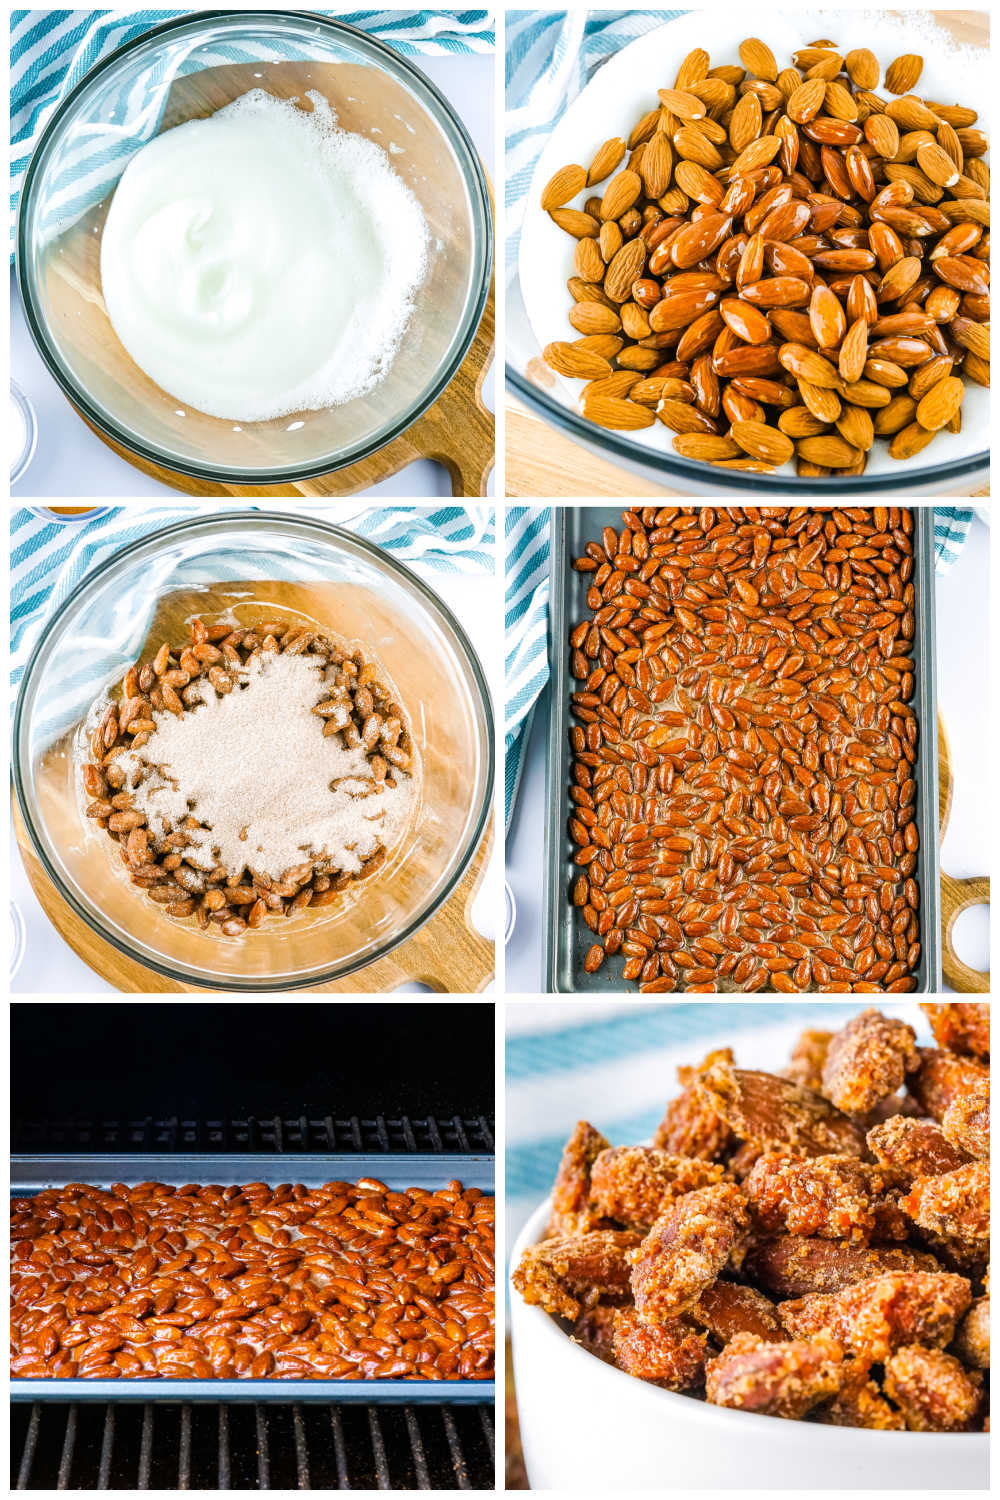 A picture collage showing how to make smoked almonds.